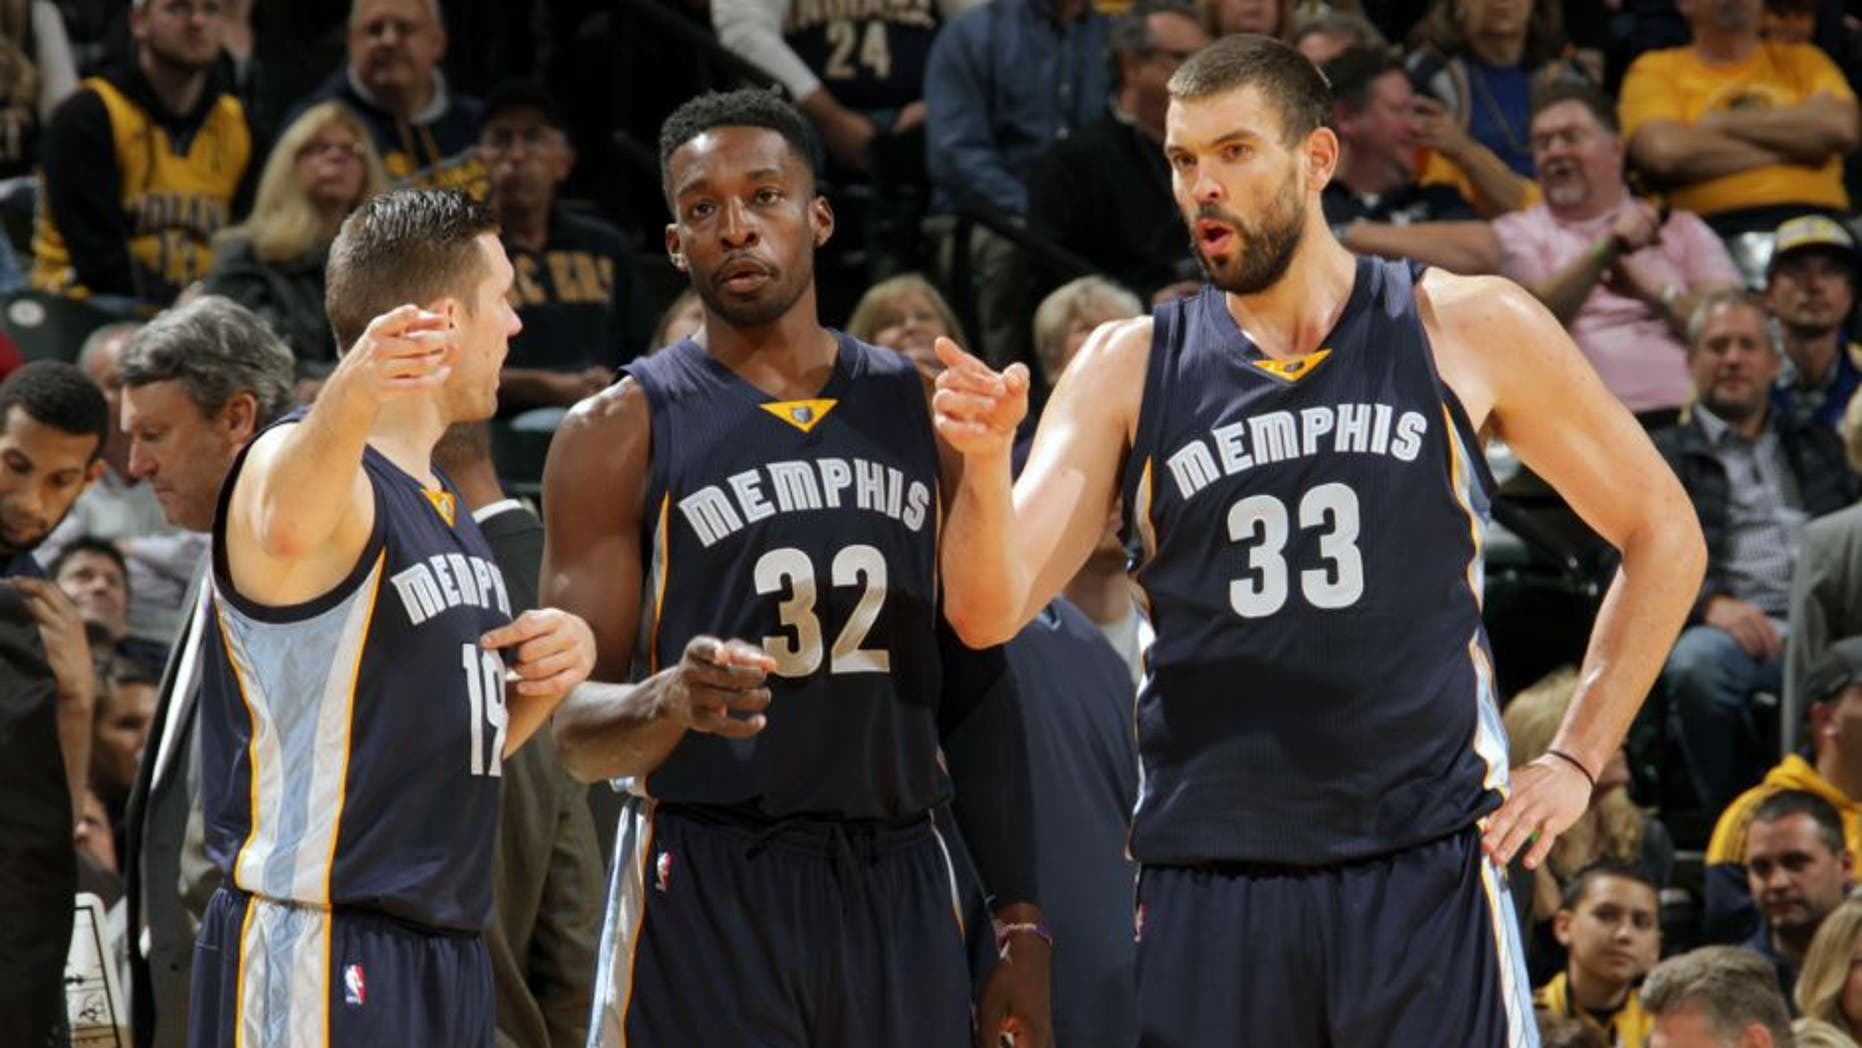 INDIANAPOLIS, IN - OCTOBER 29: Beno Udrih #19, Jeff Green #32 and Marc Gasol #33 of the Memphis Grizzlies during the game against the Indiana Pacers on October 29, 2015 at Bankers Life Fieldhouse in Indianapolis, Indiana. (Photo by Ron Hoskins/NBAE via Getty Images)